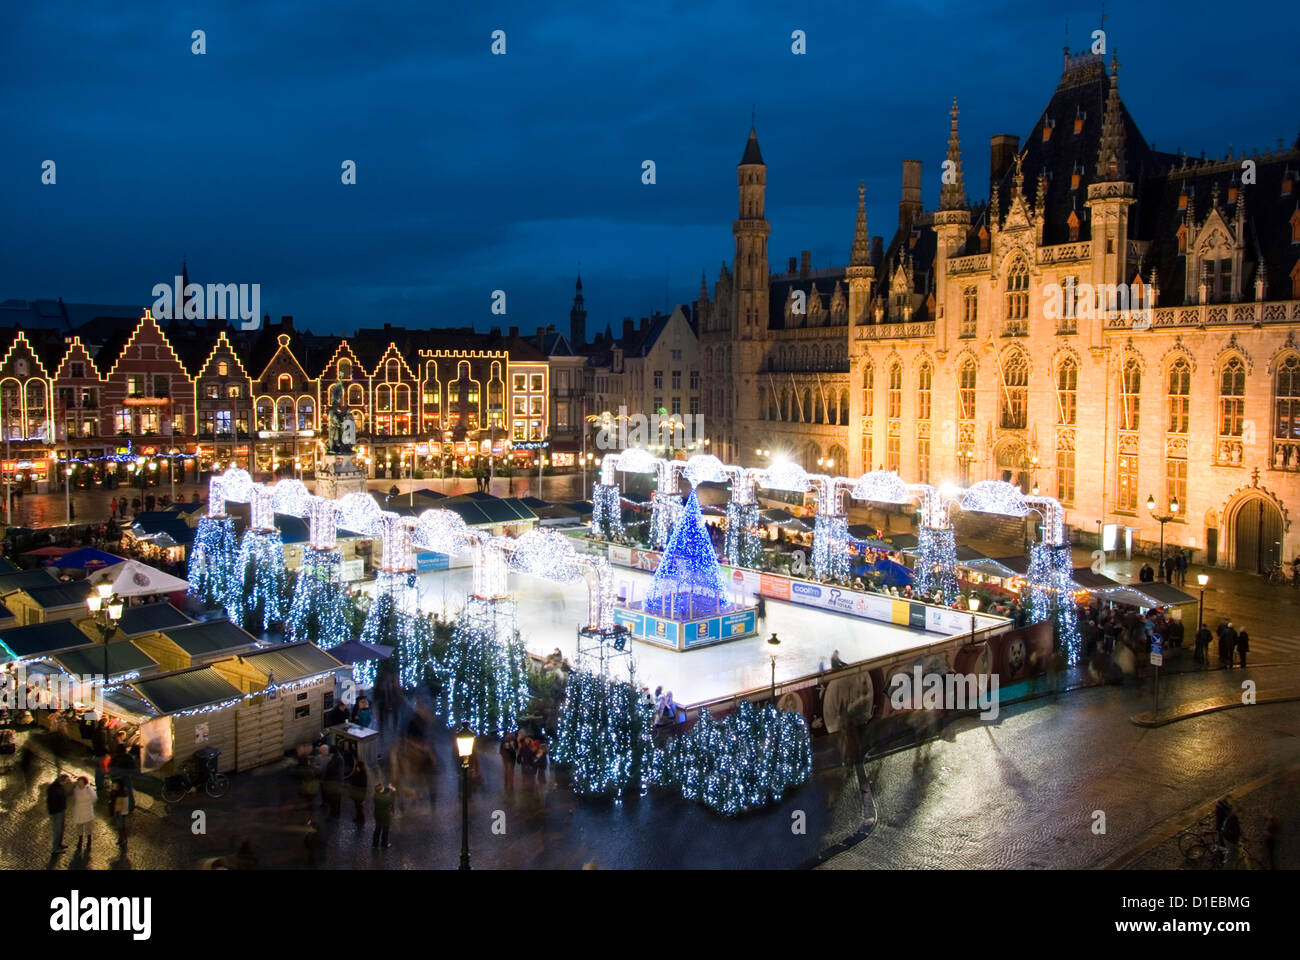 Bruges Christmas.Ice Rink And Christmas Market In The Market Square Bruges